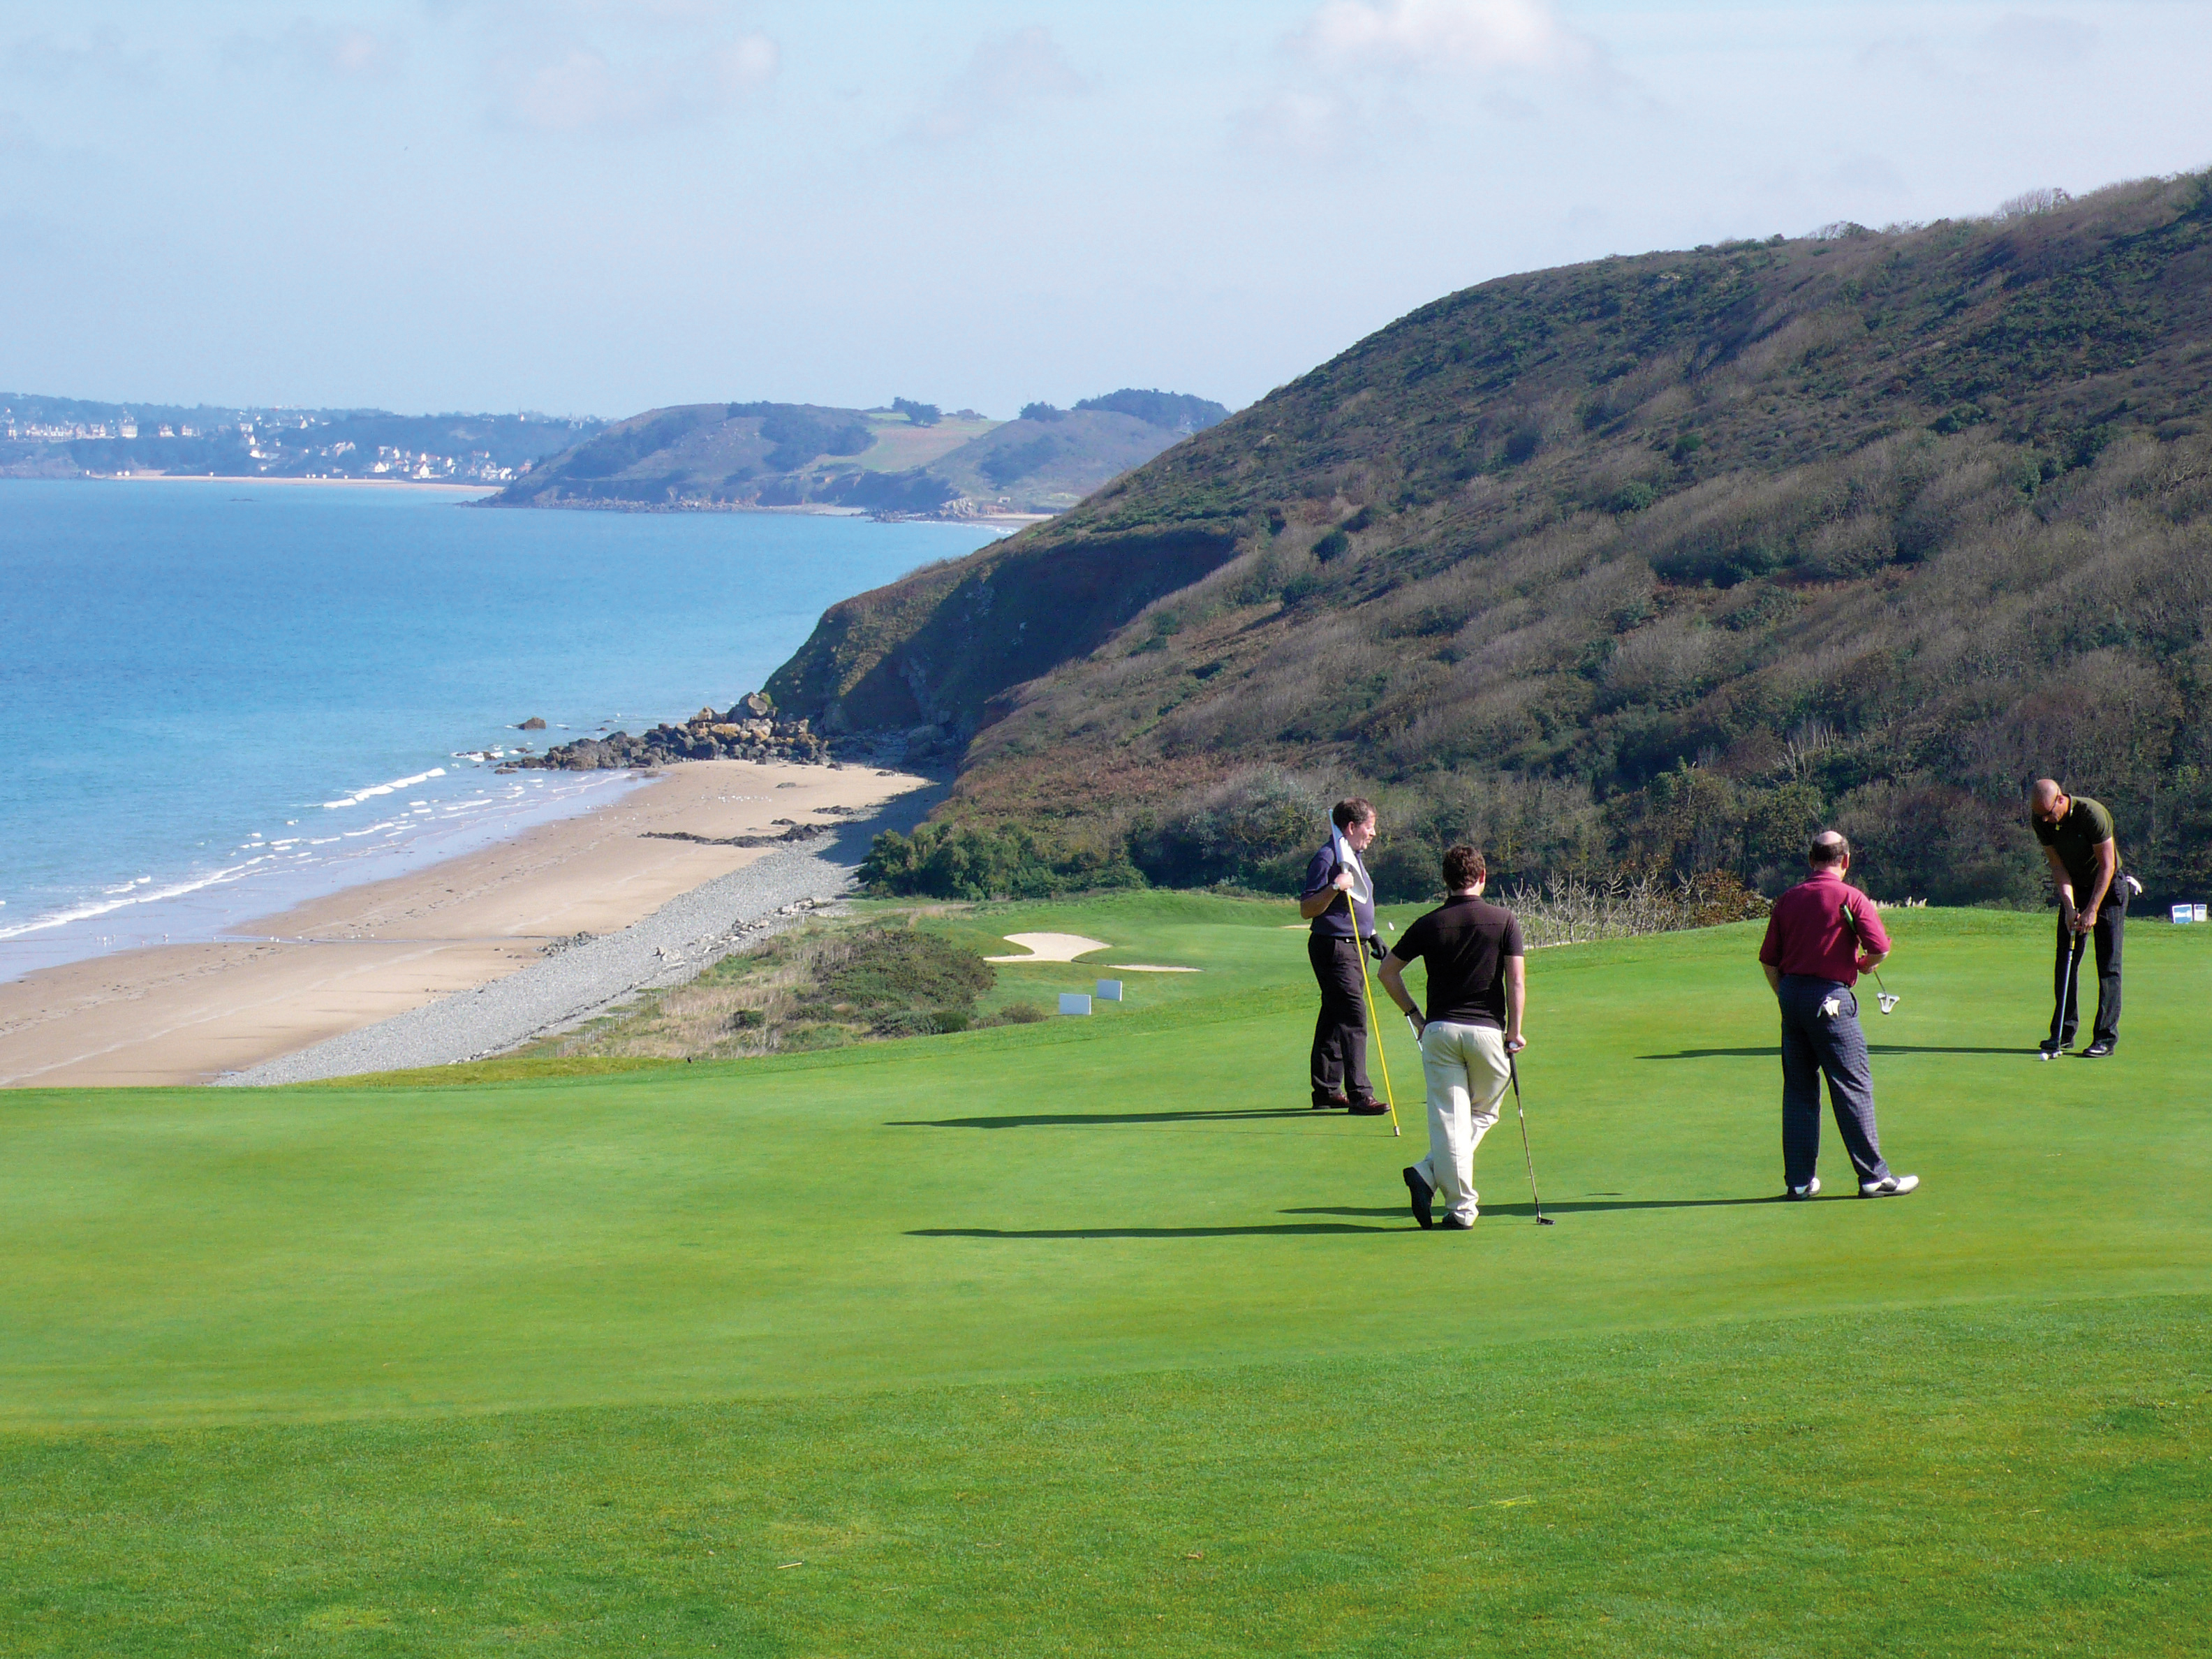 4 golf courses around St Malo offering breathtaking scenery and high quality facilities